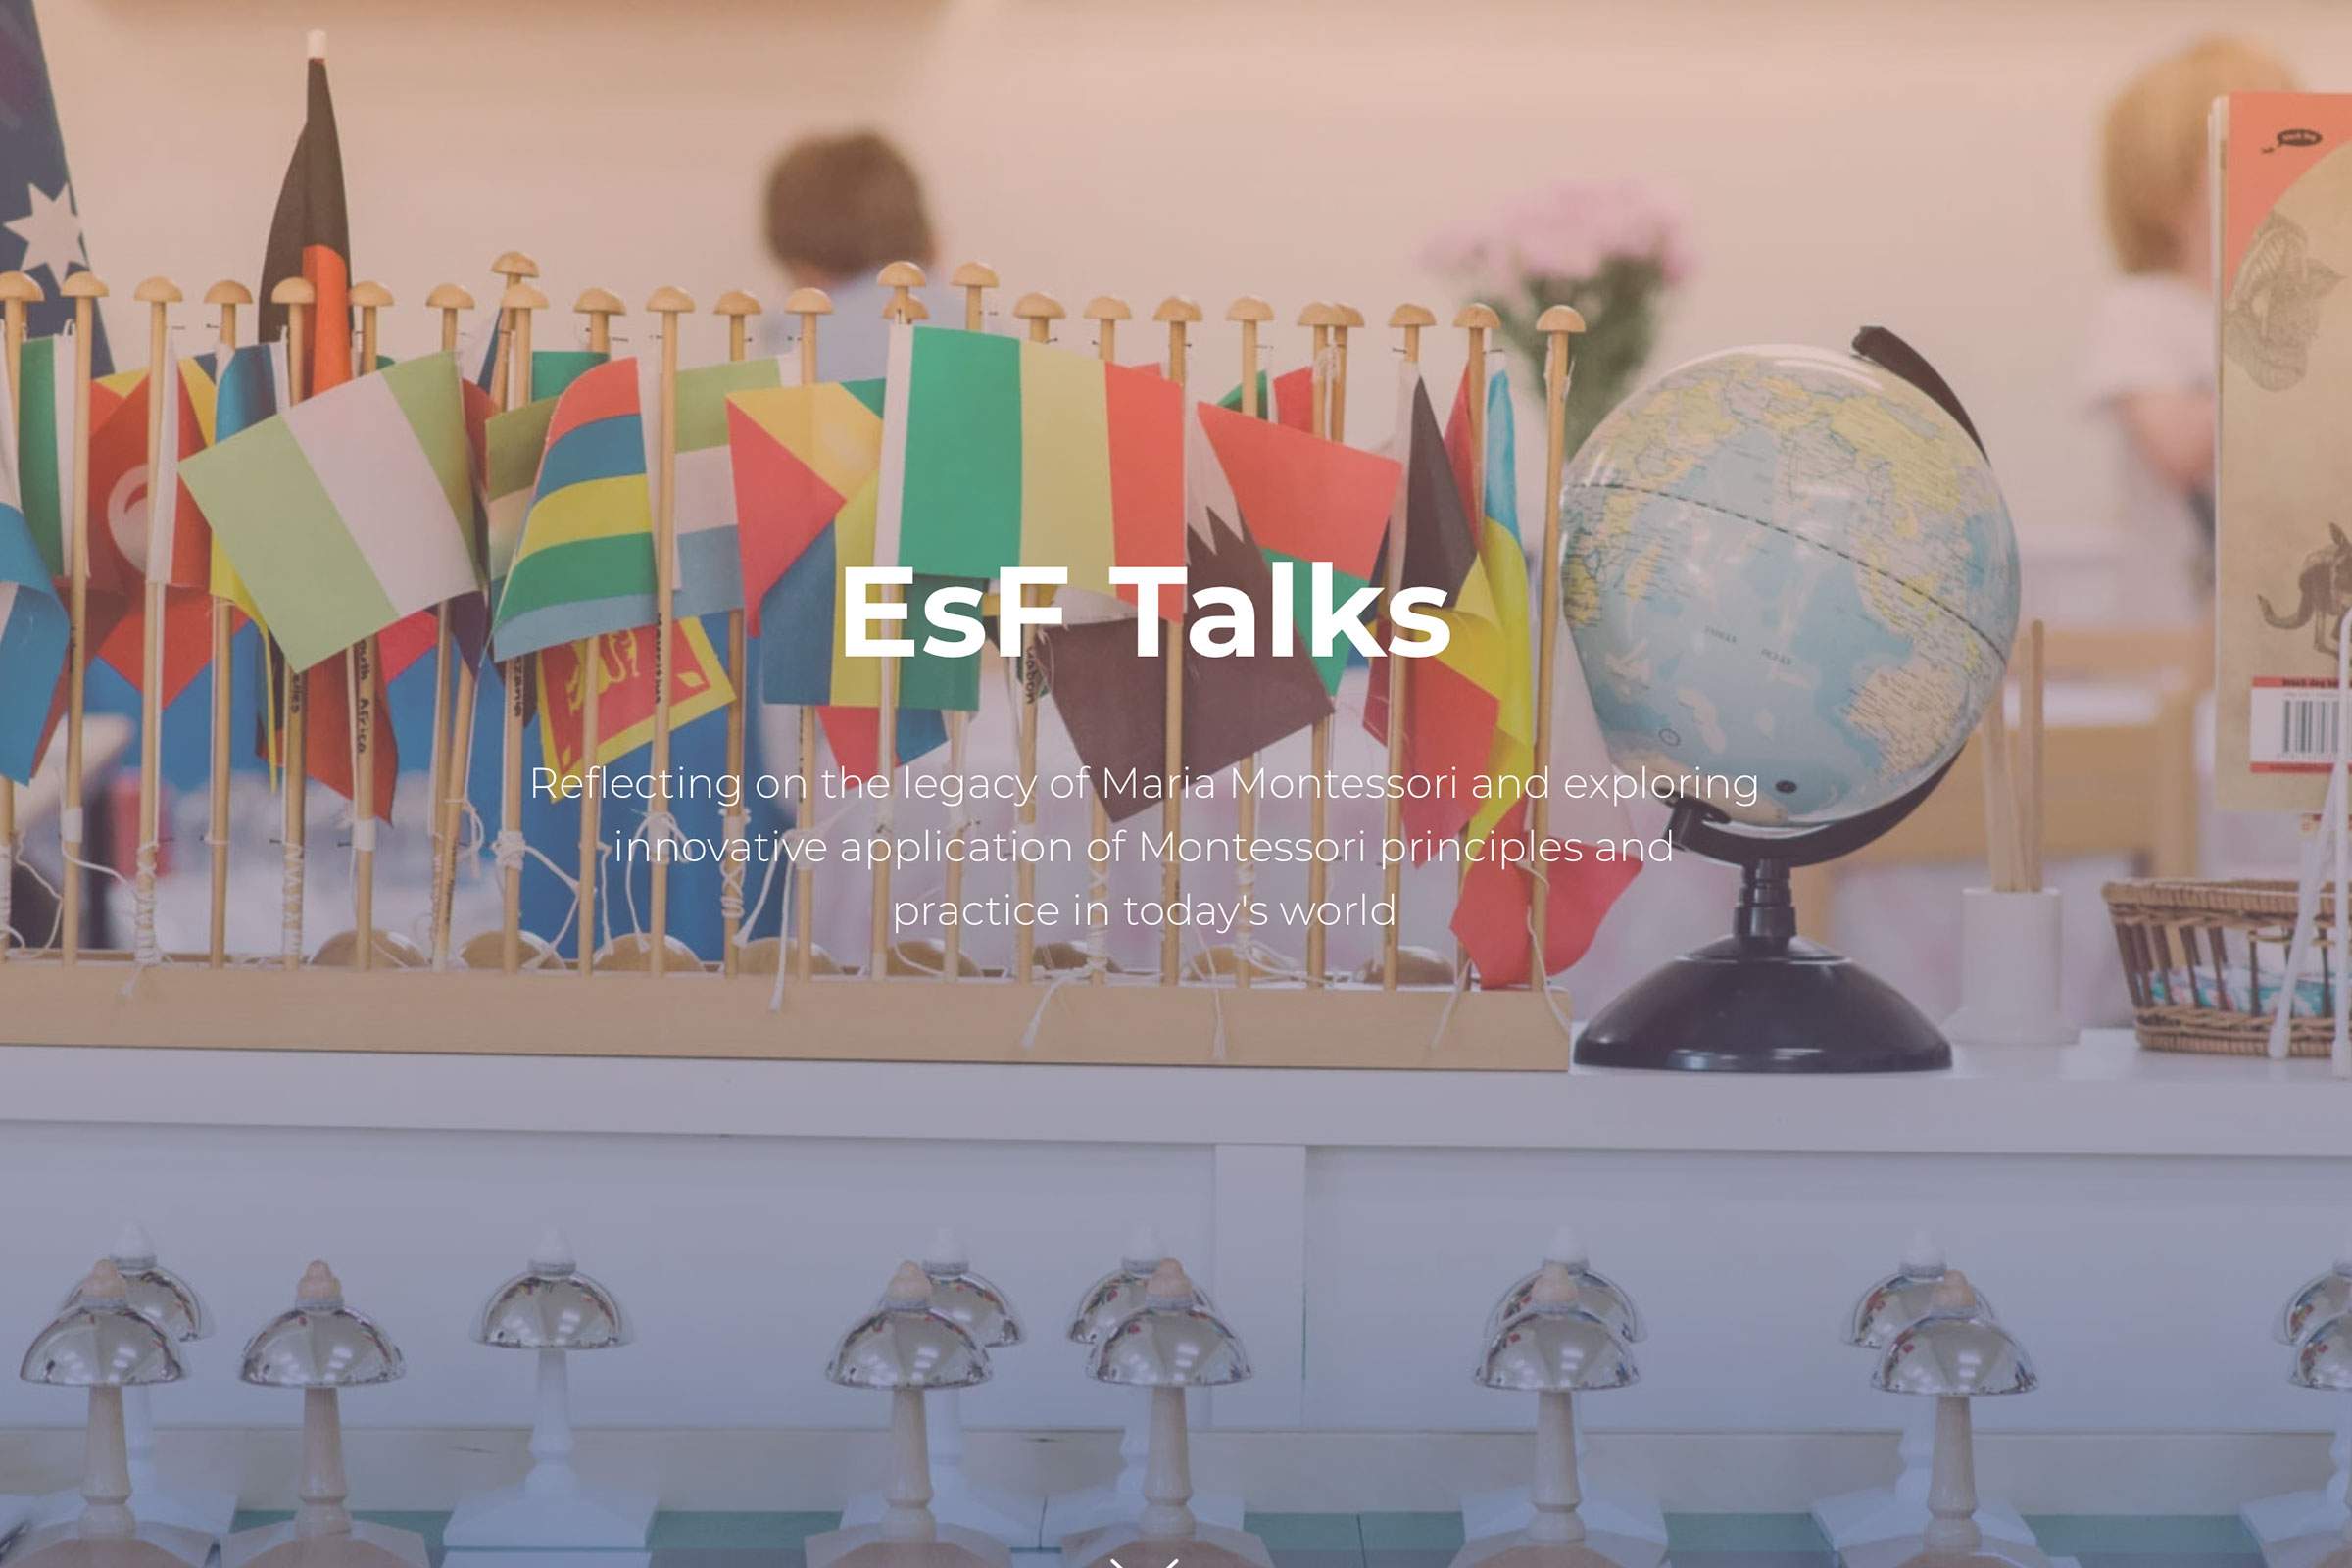 EsF Talks Flags and Globe